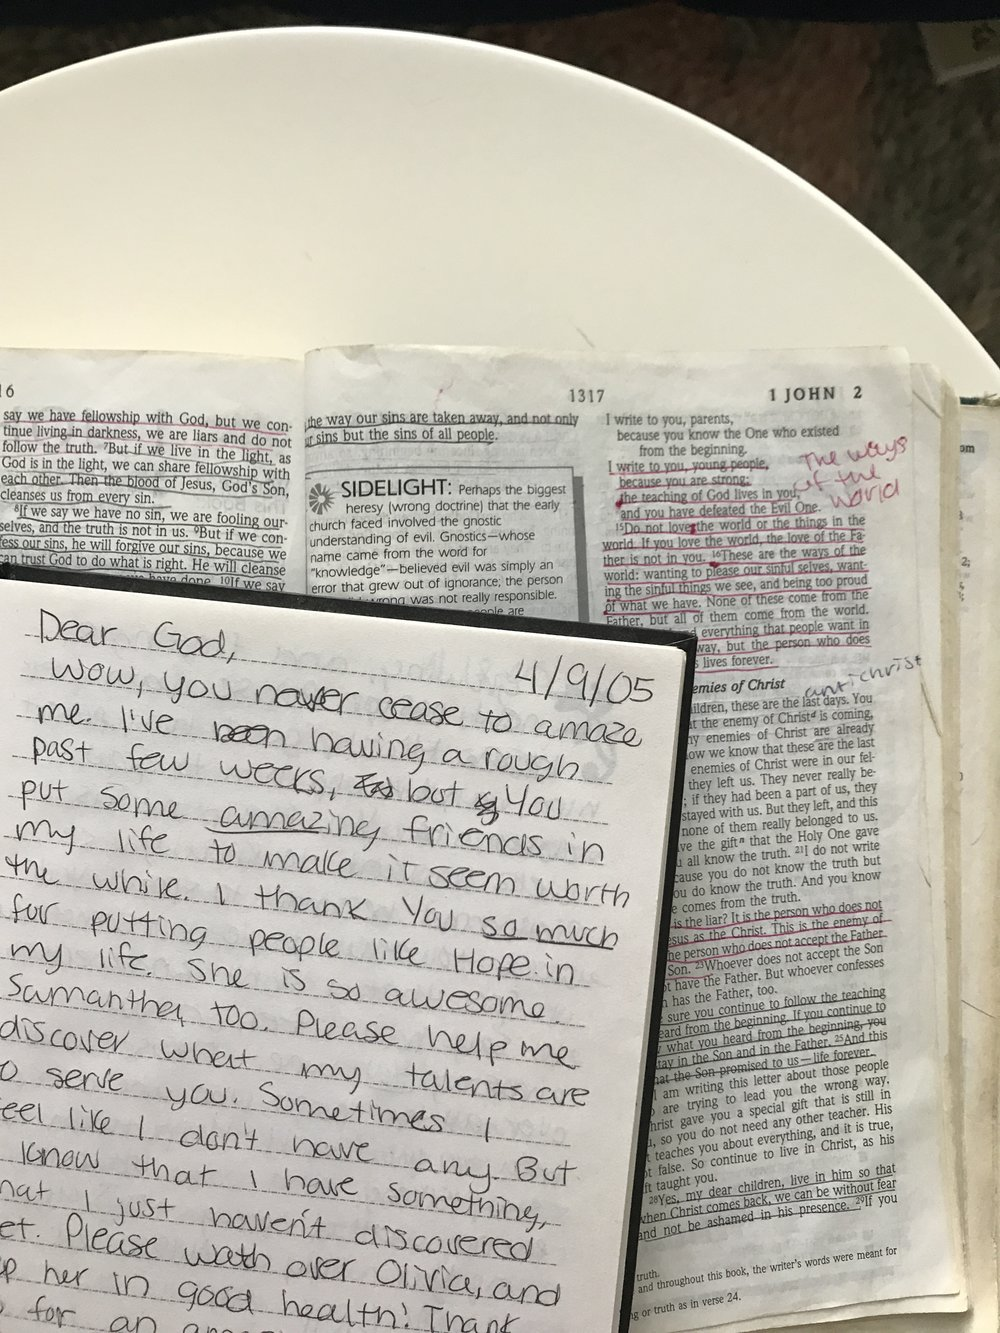 I love paging through the Bible and journal I was using during those early years of following Jesus. It's half comedic and half precious, which might just my favorite combination for some entertainment!